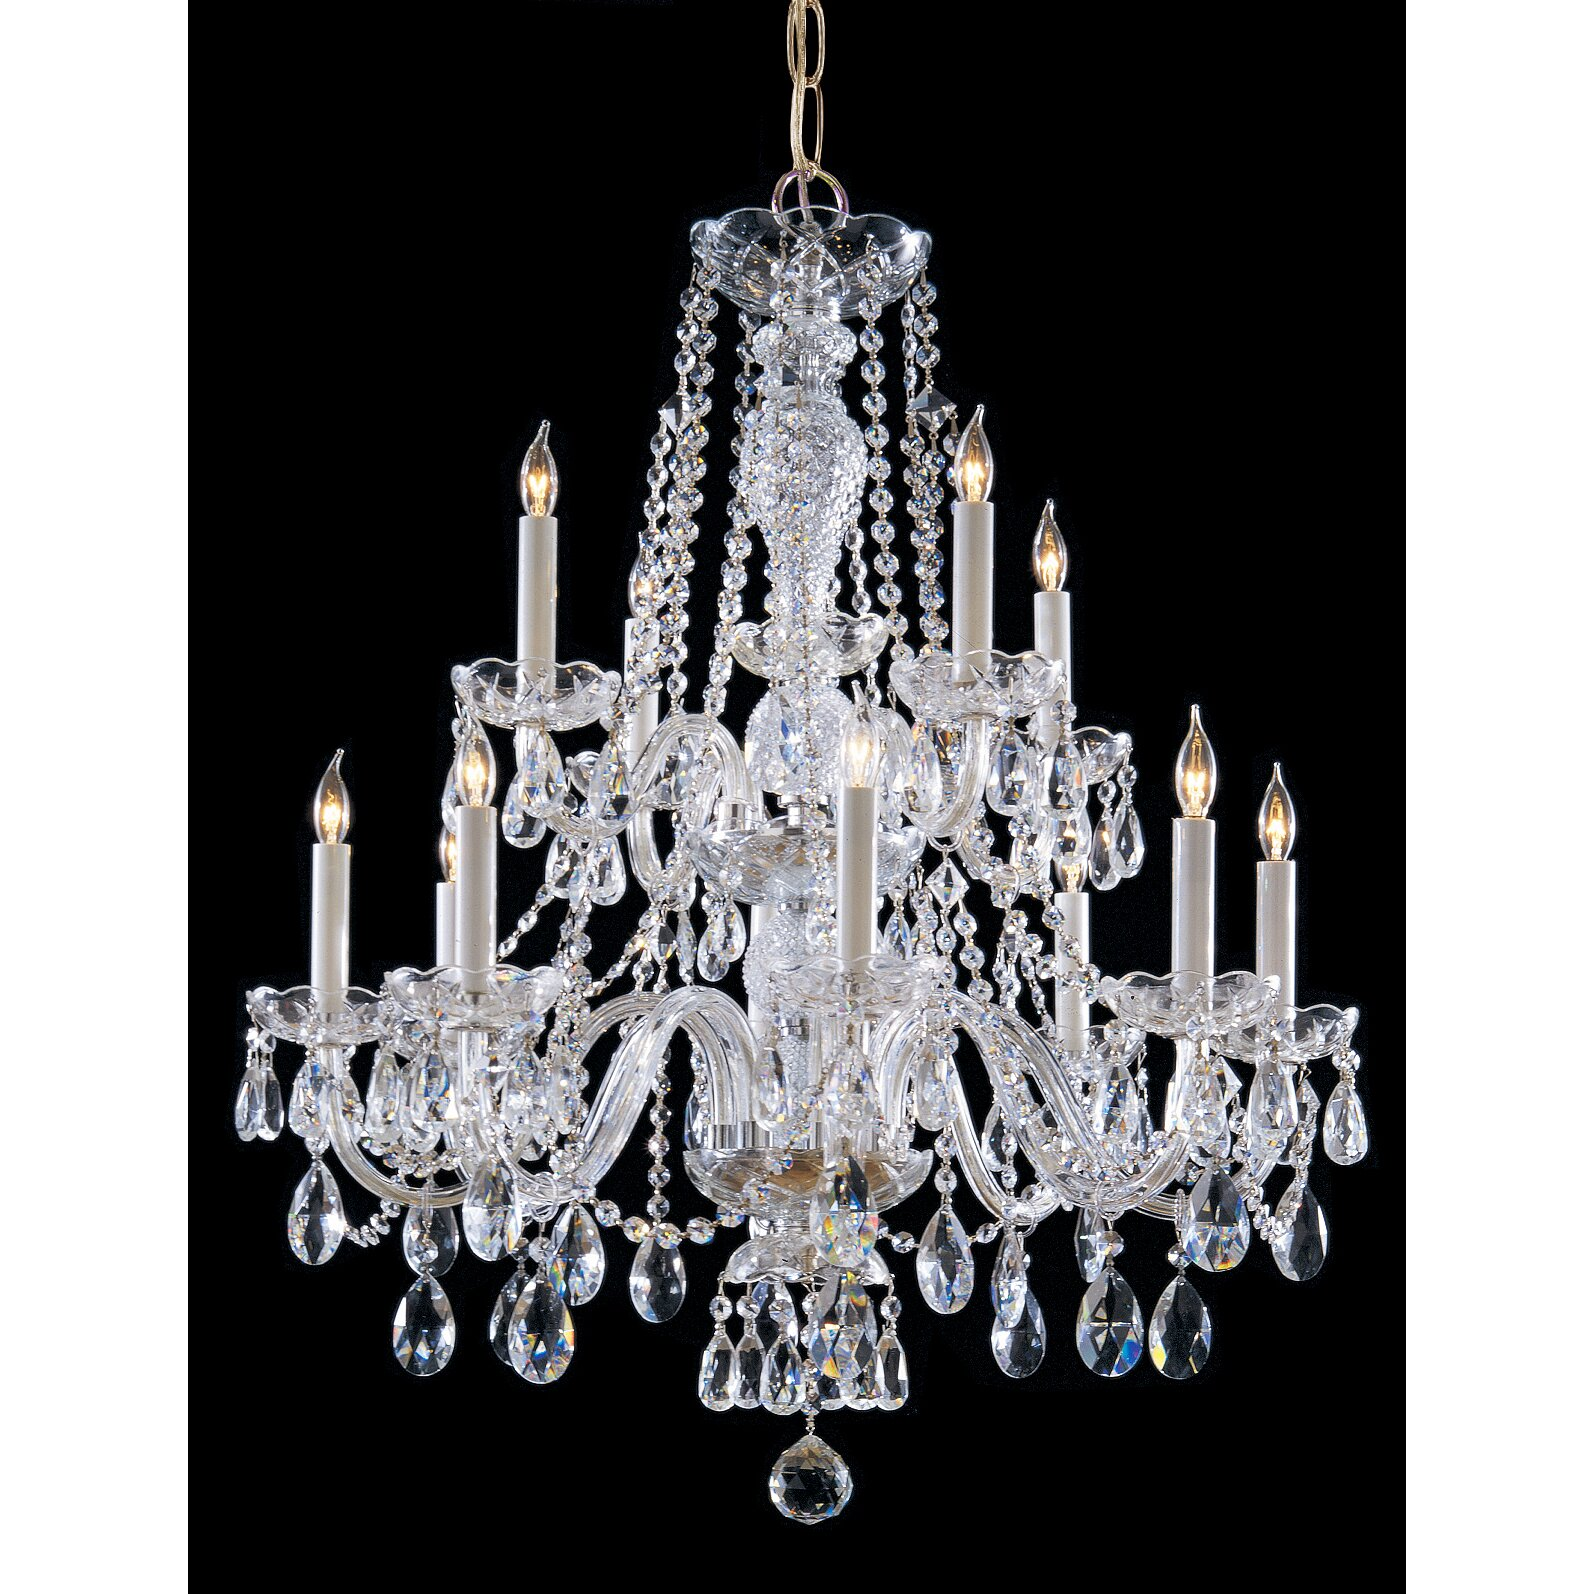 Crystorama traditional crystal 12 light crystal chandelier reviews wayfair - Traditional crystal chandeliers ...